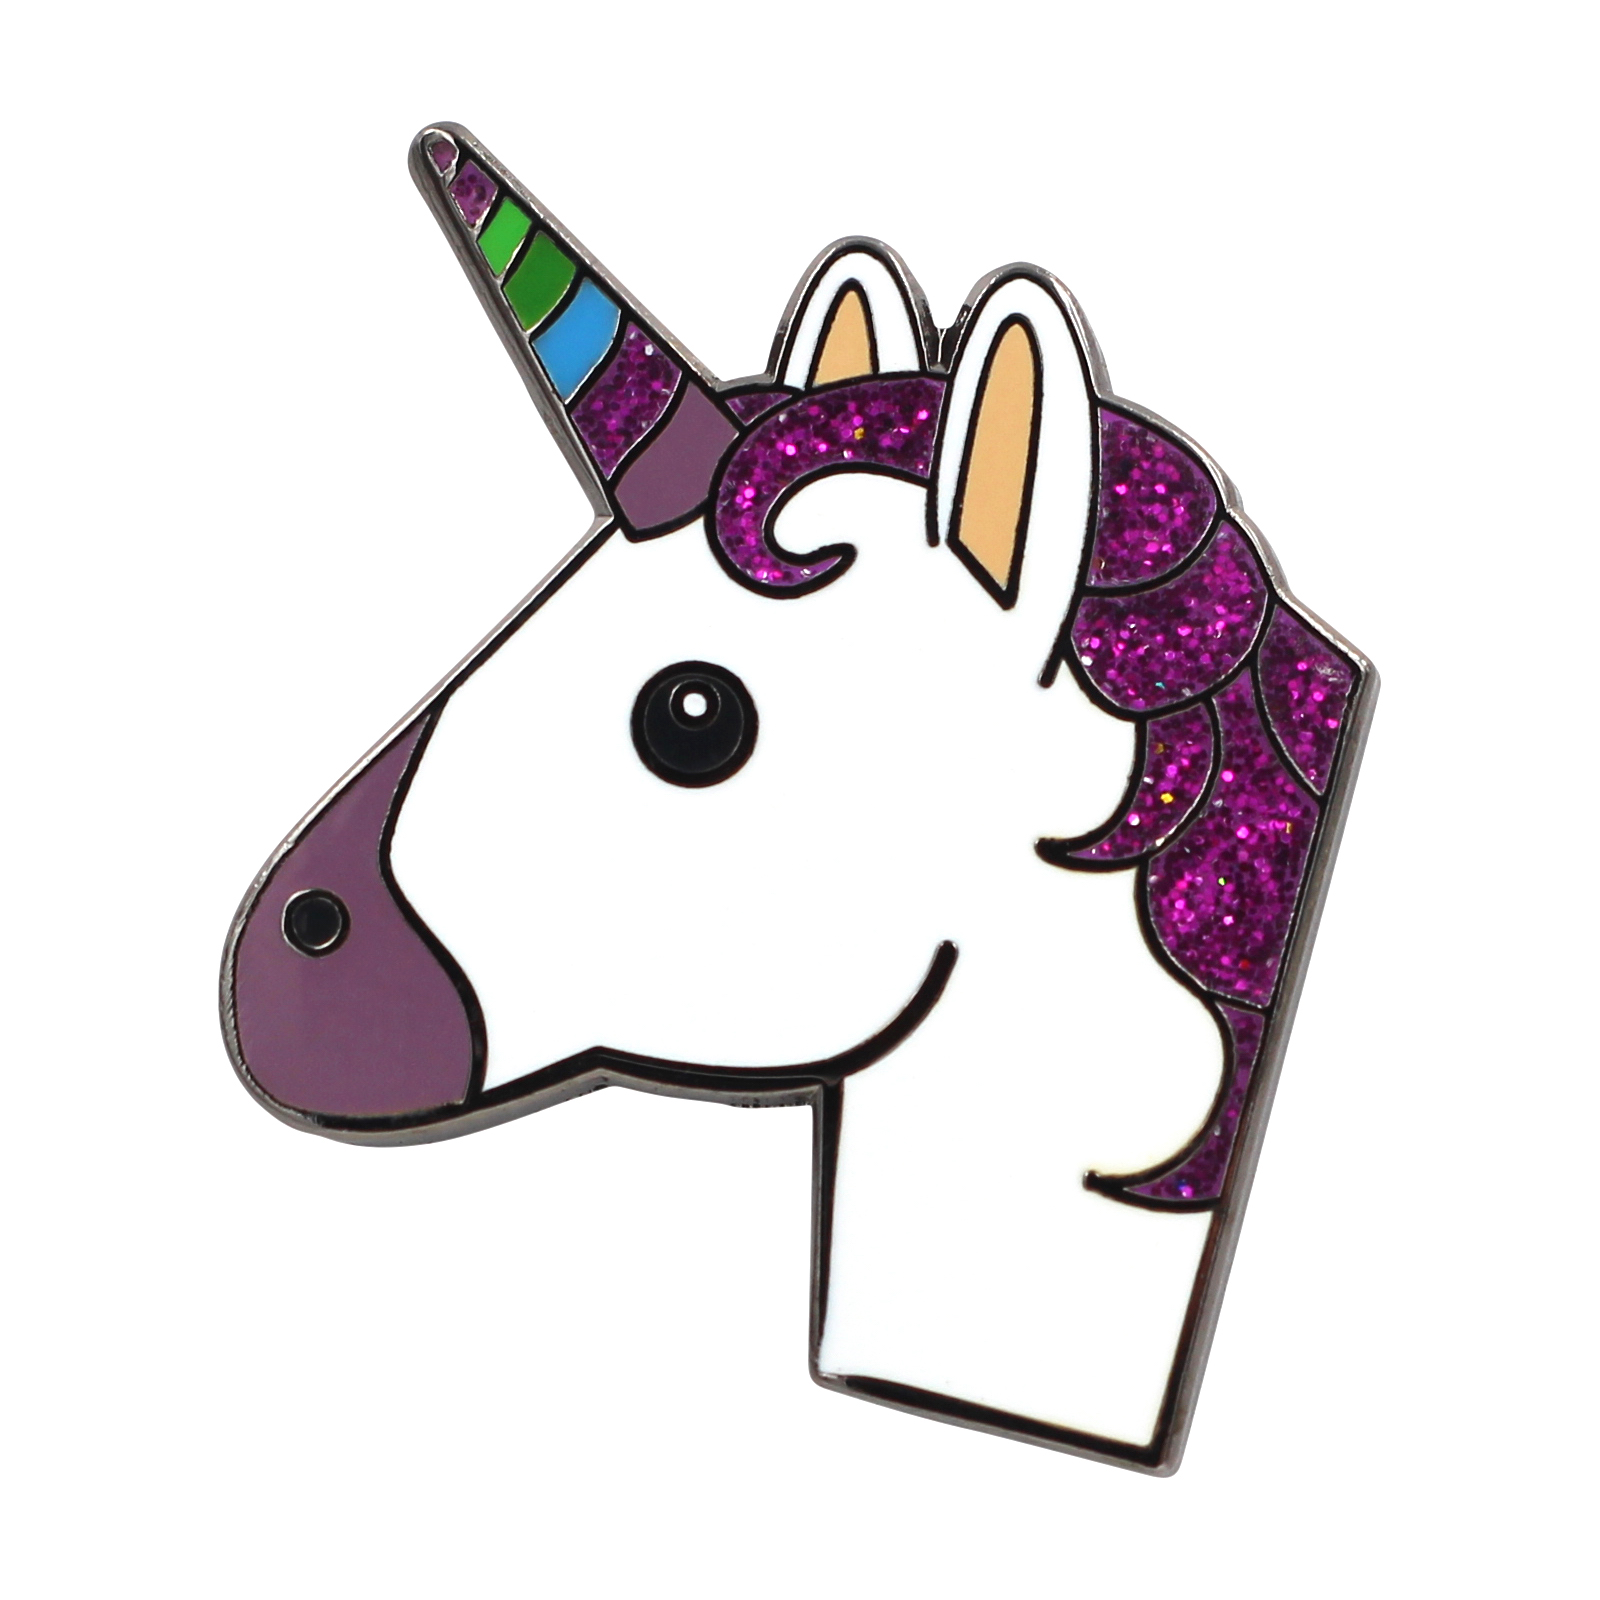 1600x1600 Unicorn Emoji Pin Enamel Pin For Your Life Real Sic